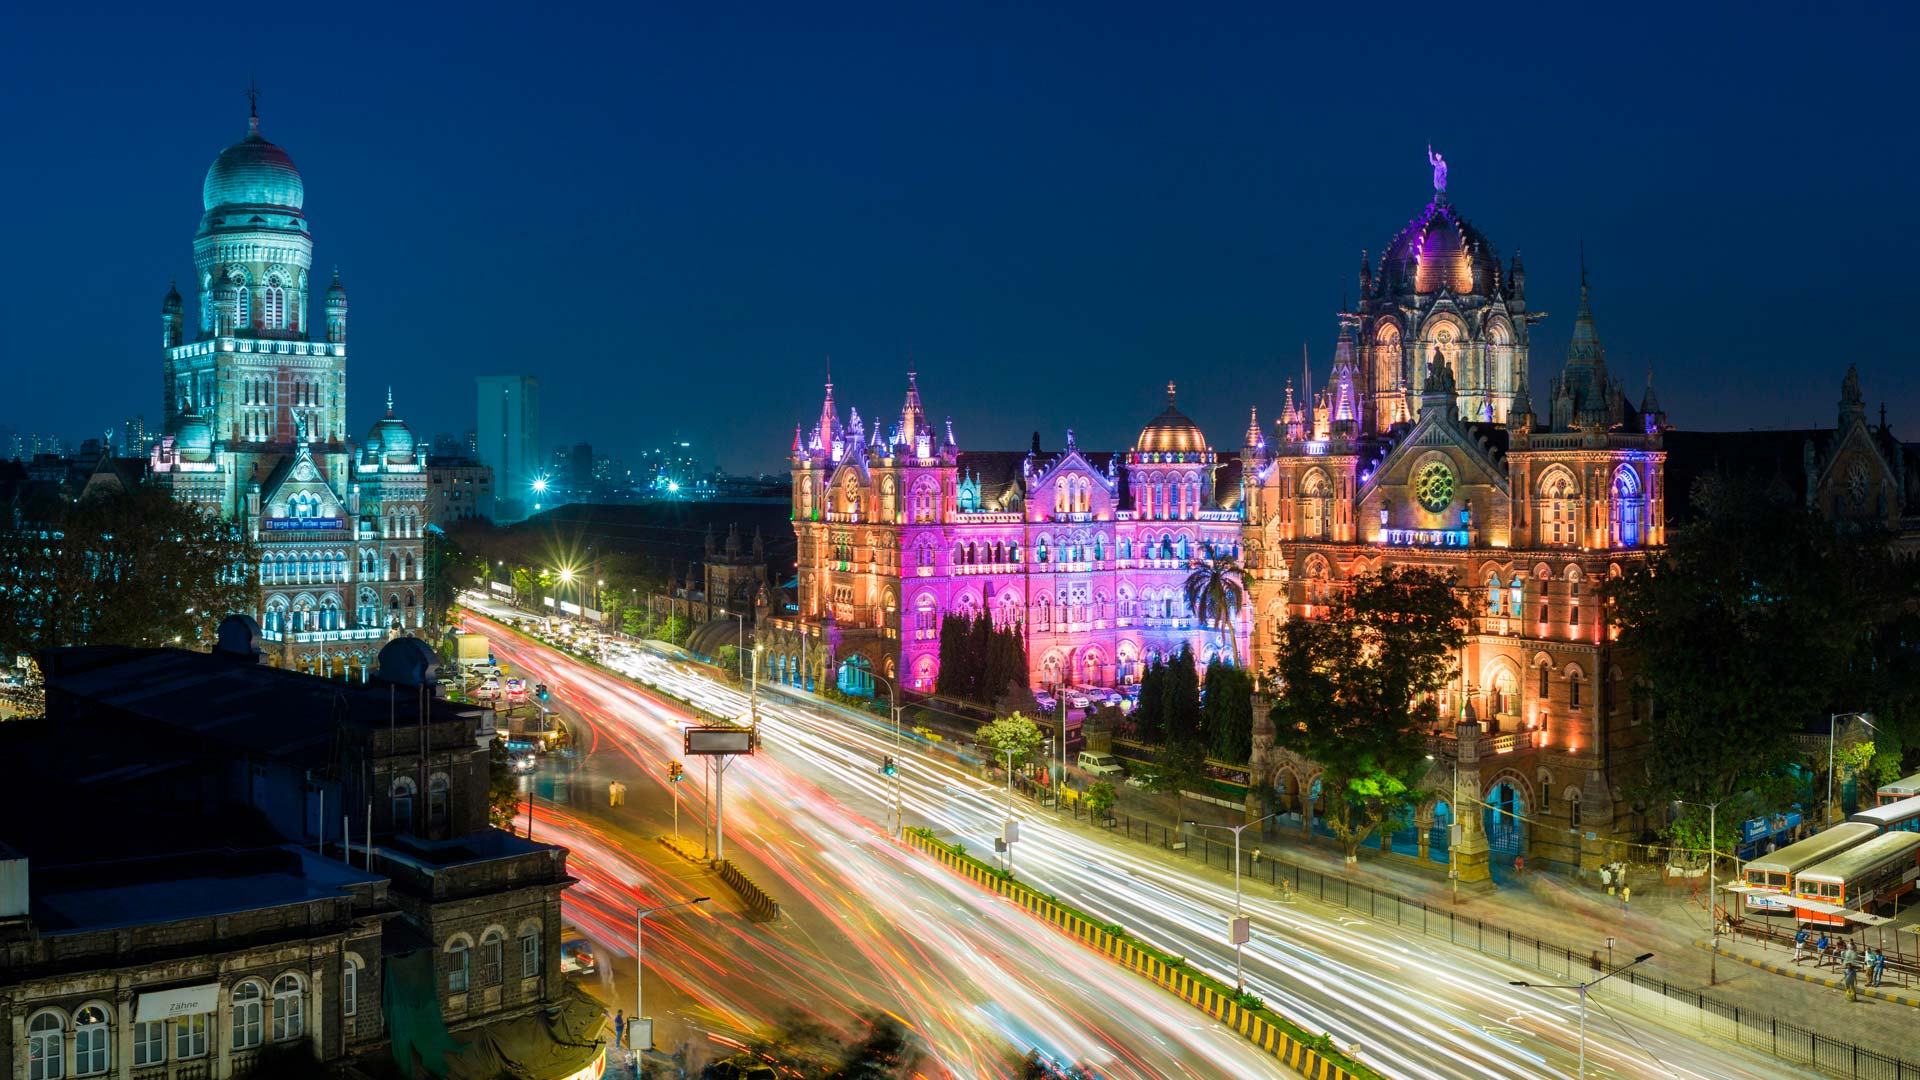 CST Mumbai Bing Wallpaper Download 1920x1080